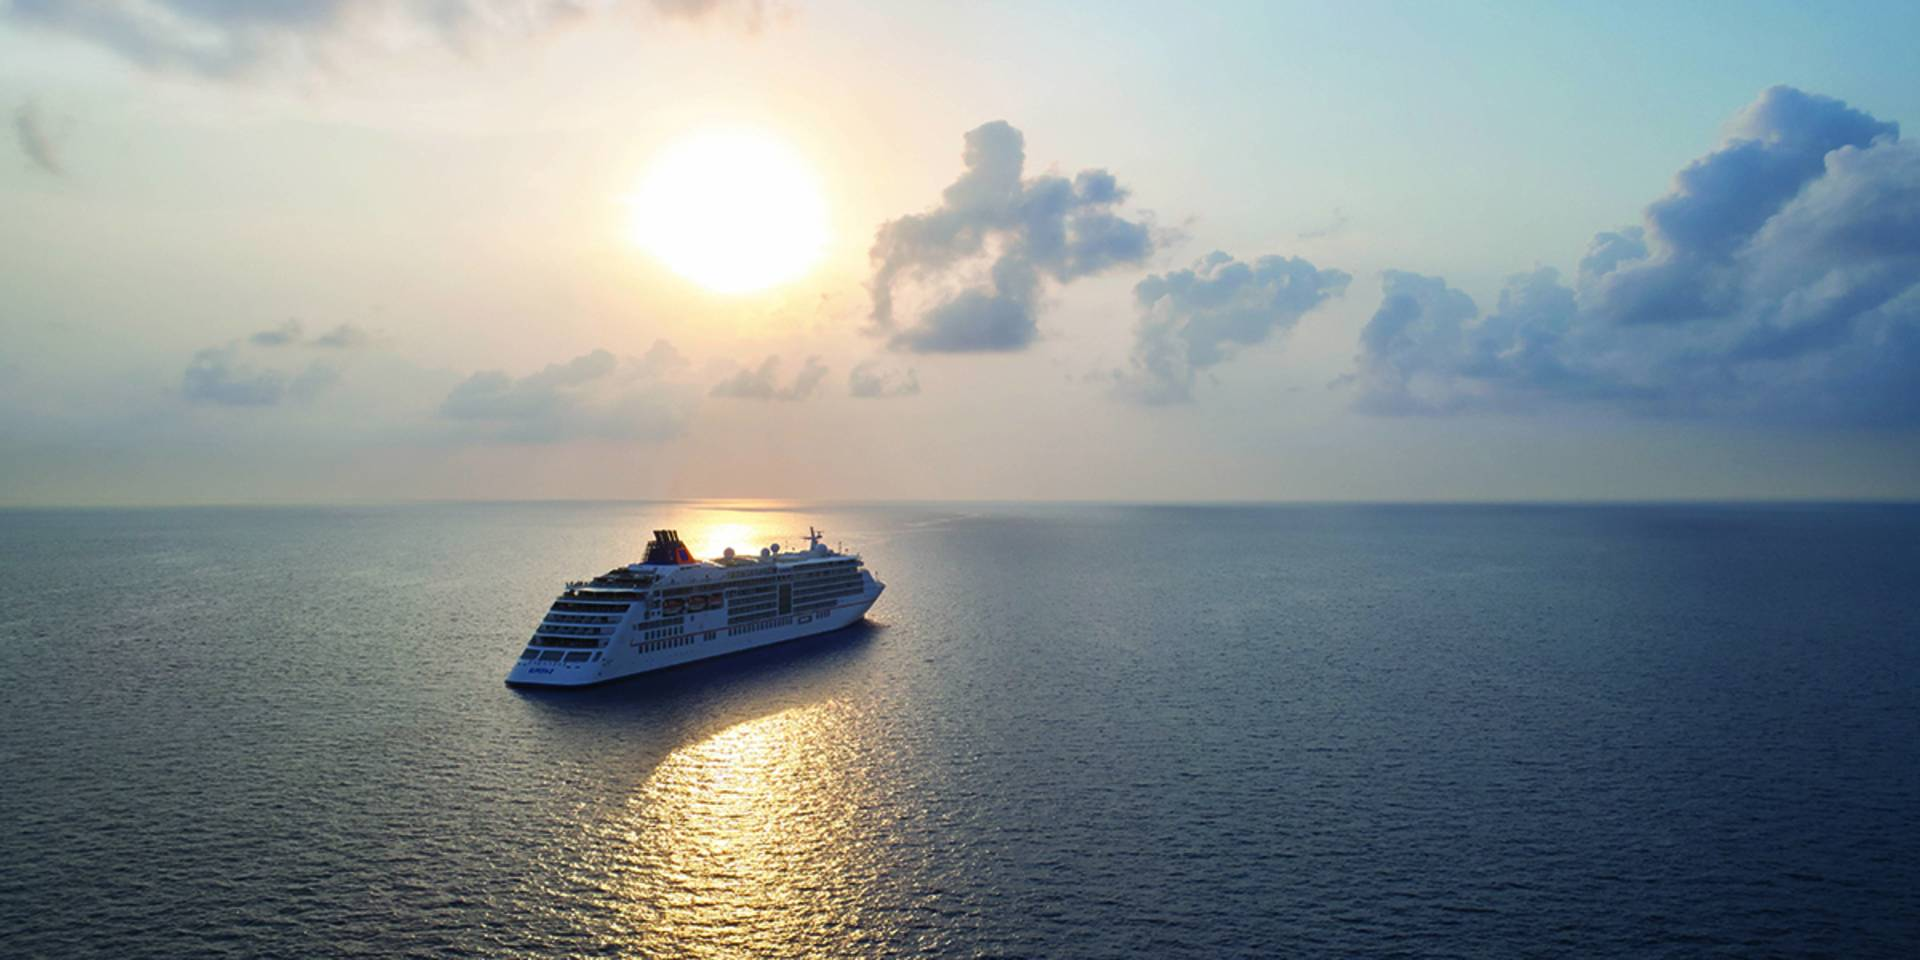 MS EUROPA 2 - The experience of luxury cruises - Hapag-Lloyd